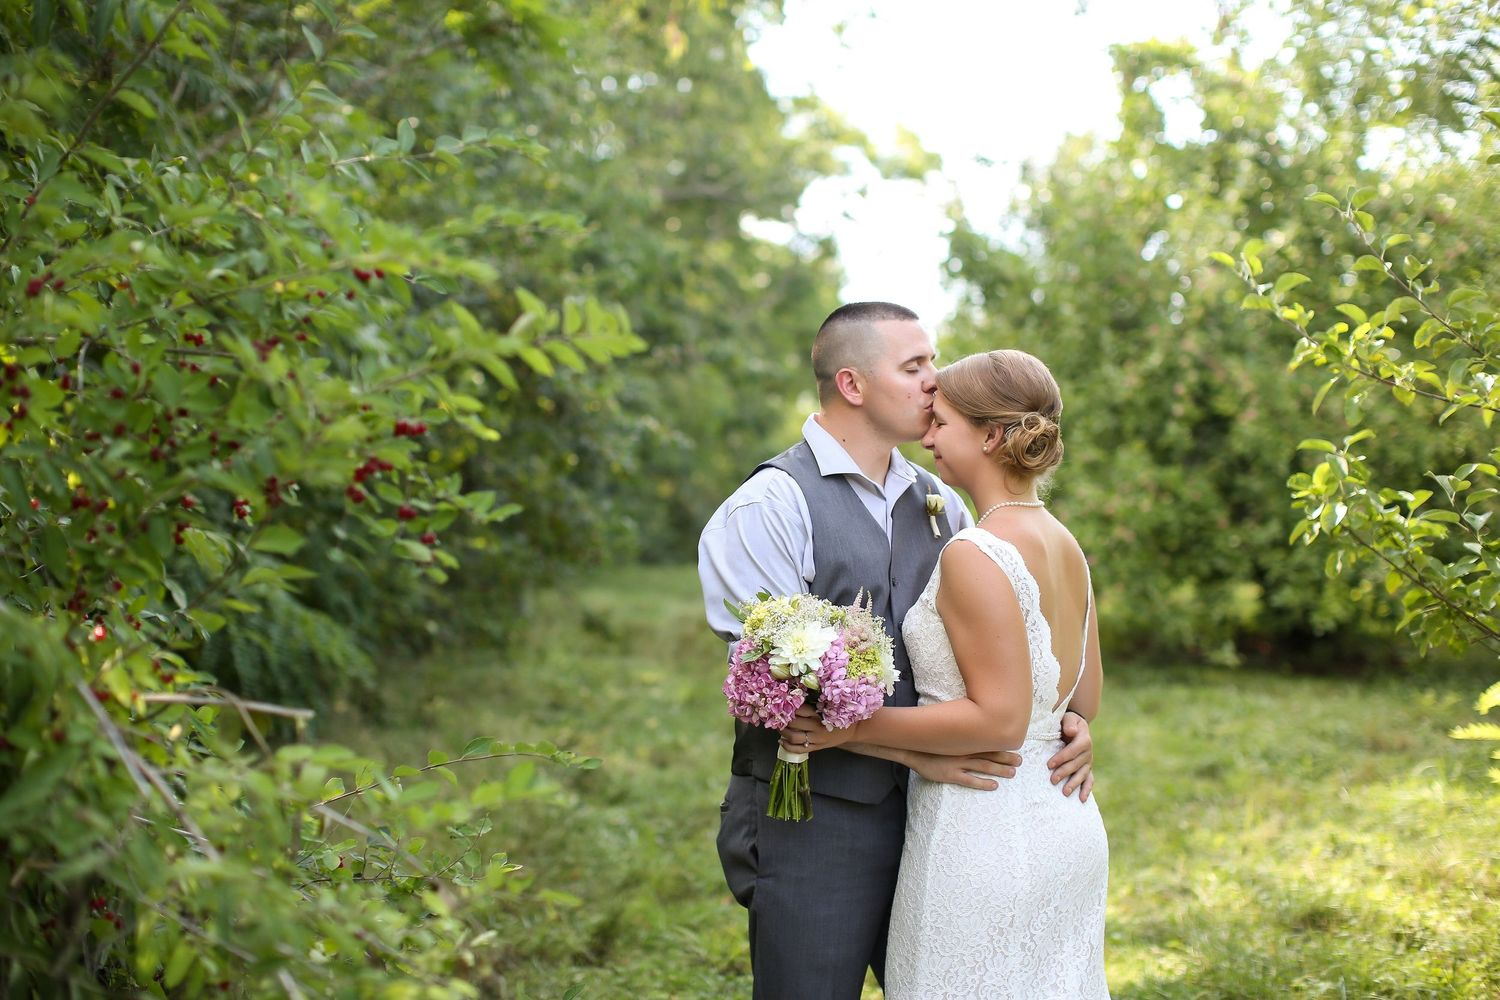 Groom kissing bride on the forehead during an apple orchard wedding